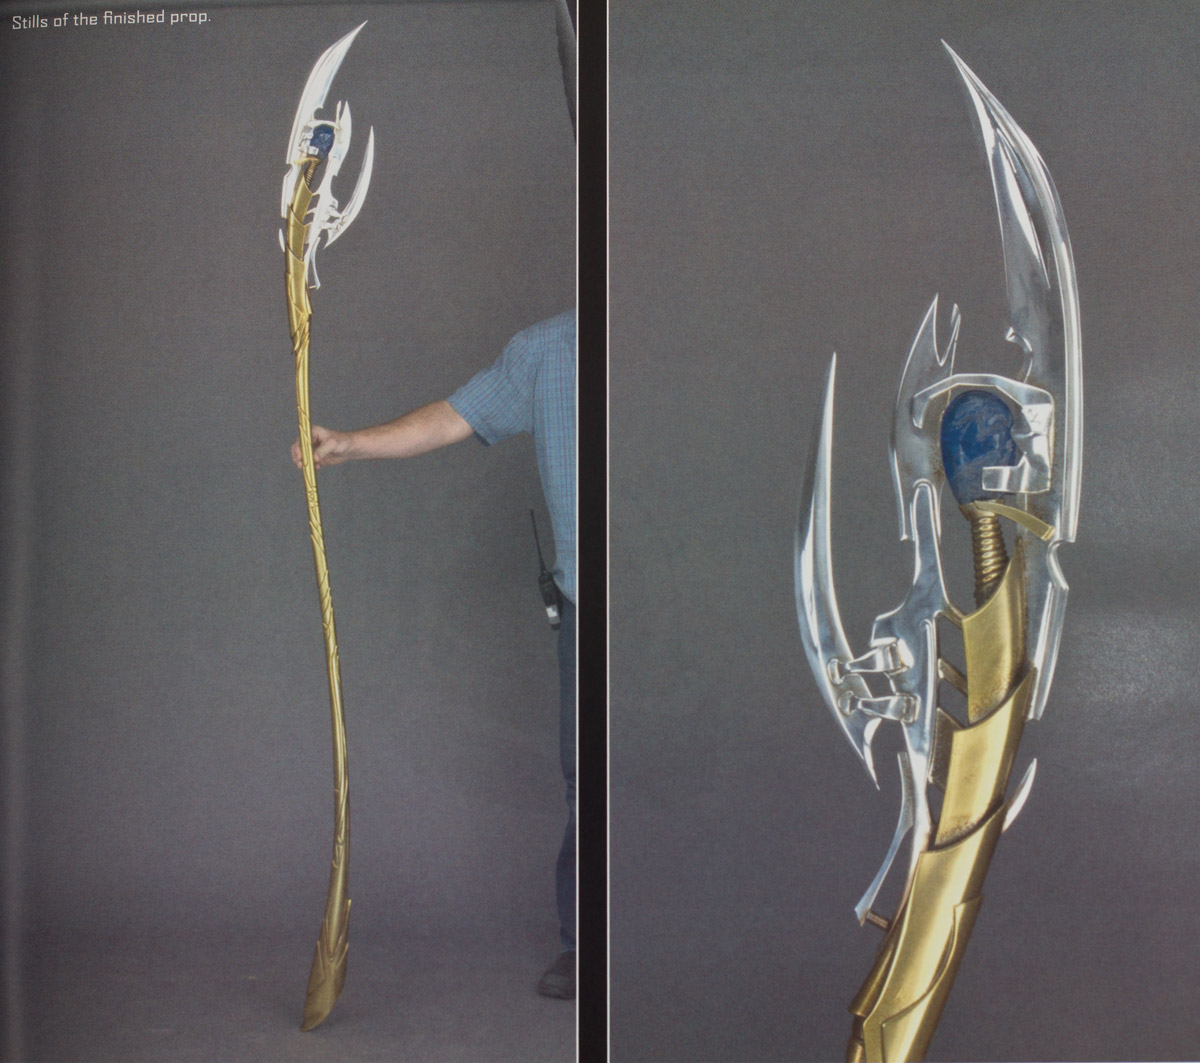 Making Loki's Sceptor / Staff from the Avengers